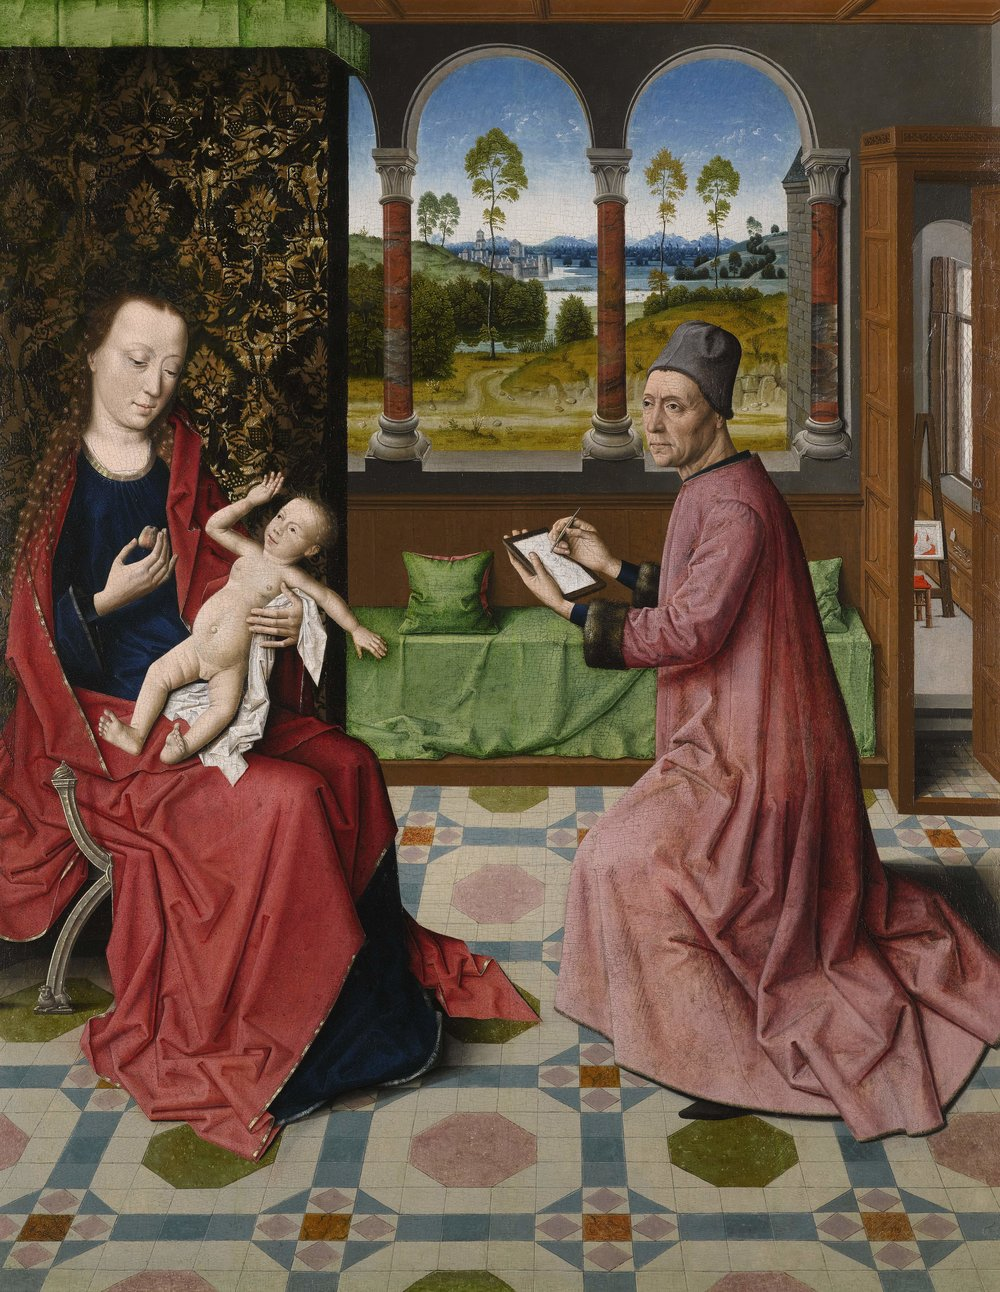 DIERIC BOUTS THE ELDER, ST LUKE DRAWING THE VIRGIN AND CHILD, C1440-1475 © THE BOWES MUSEUM